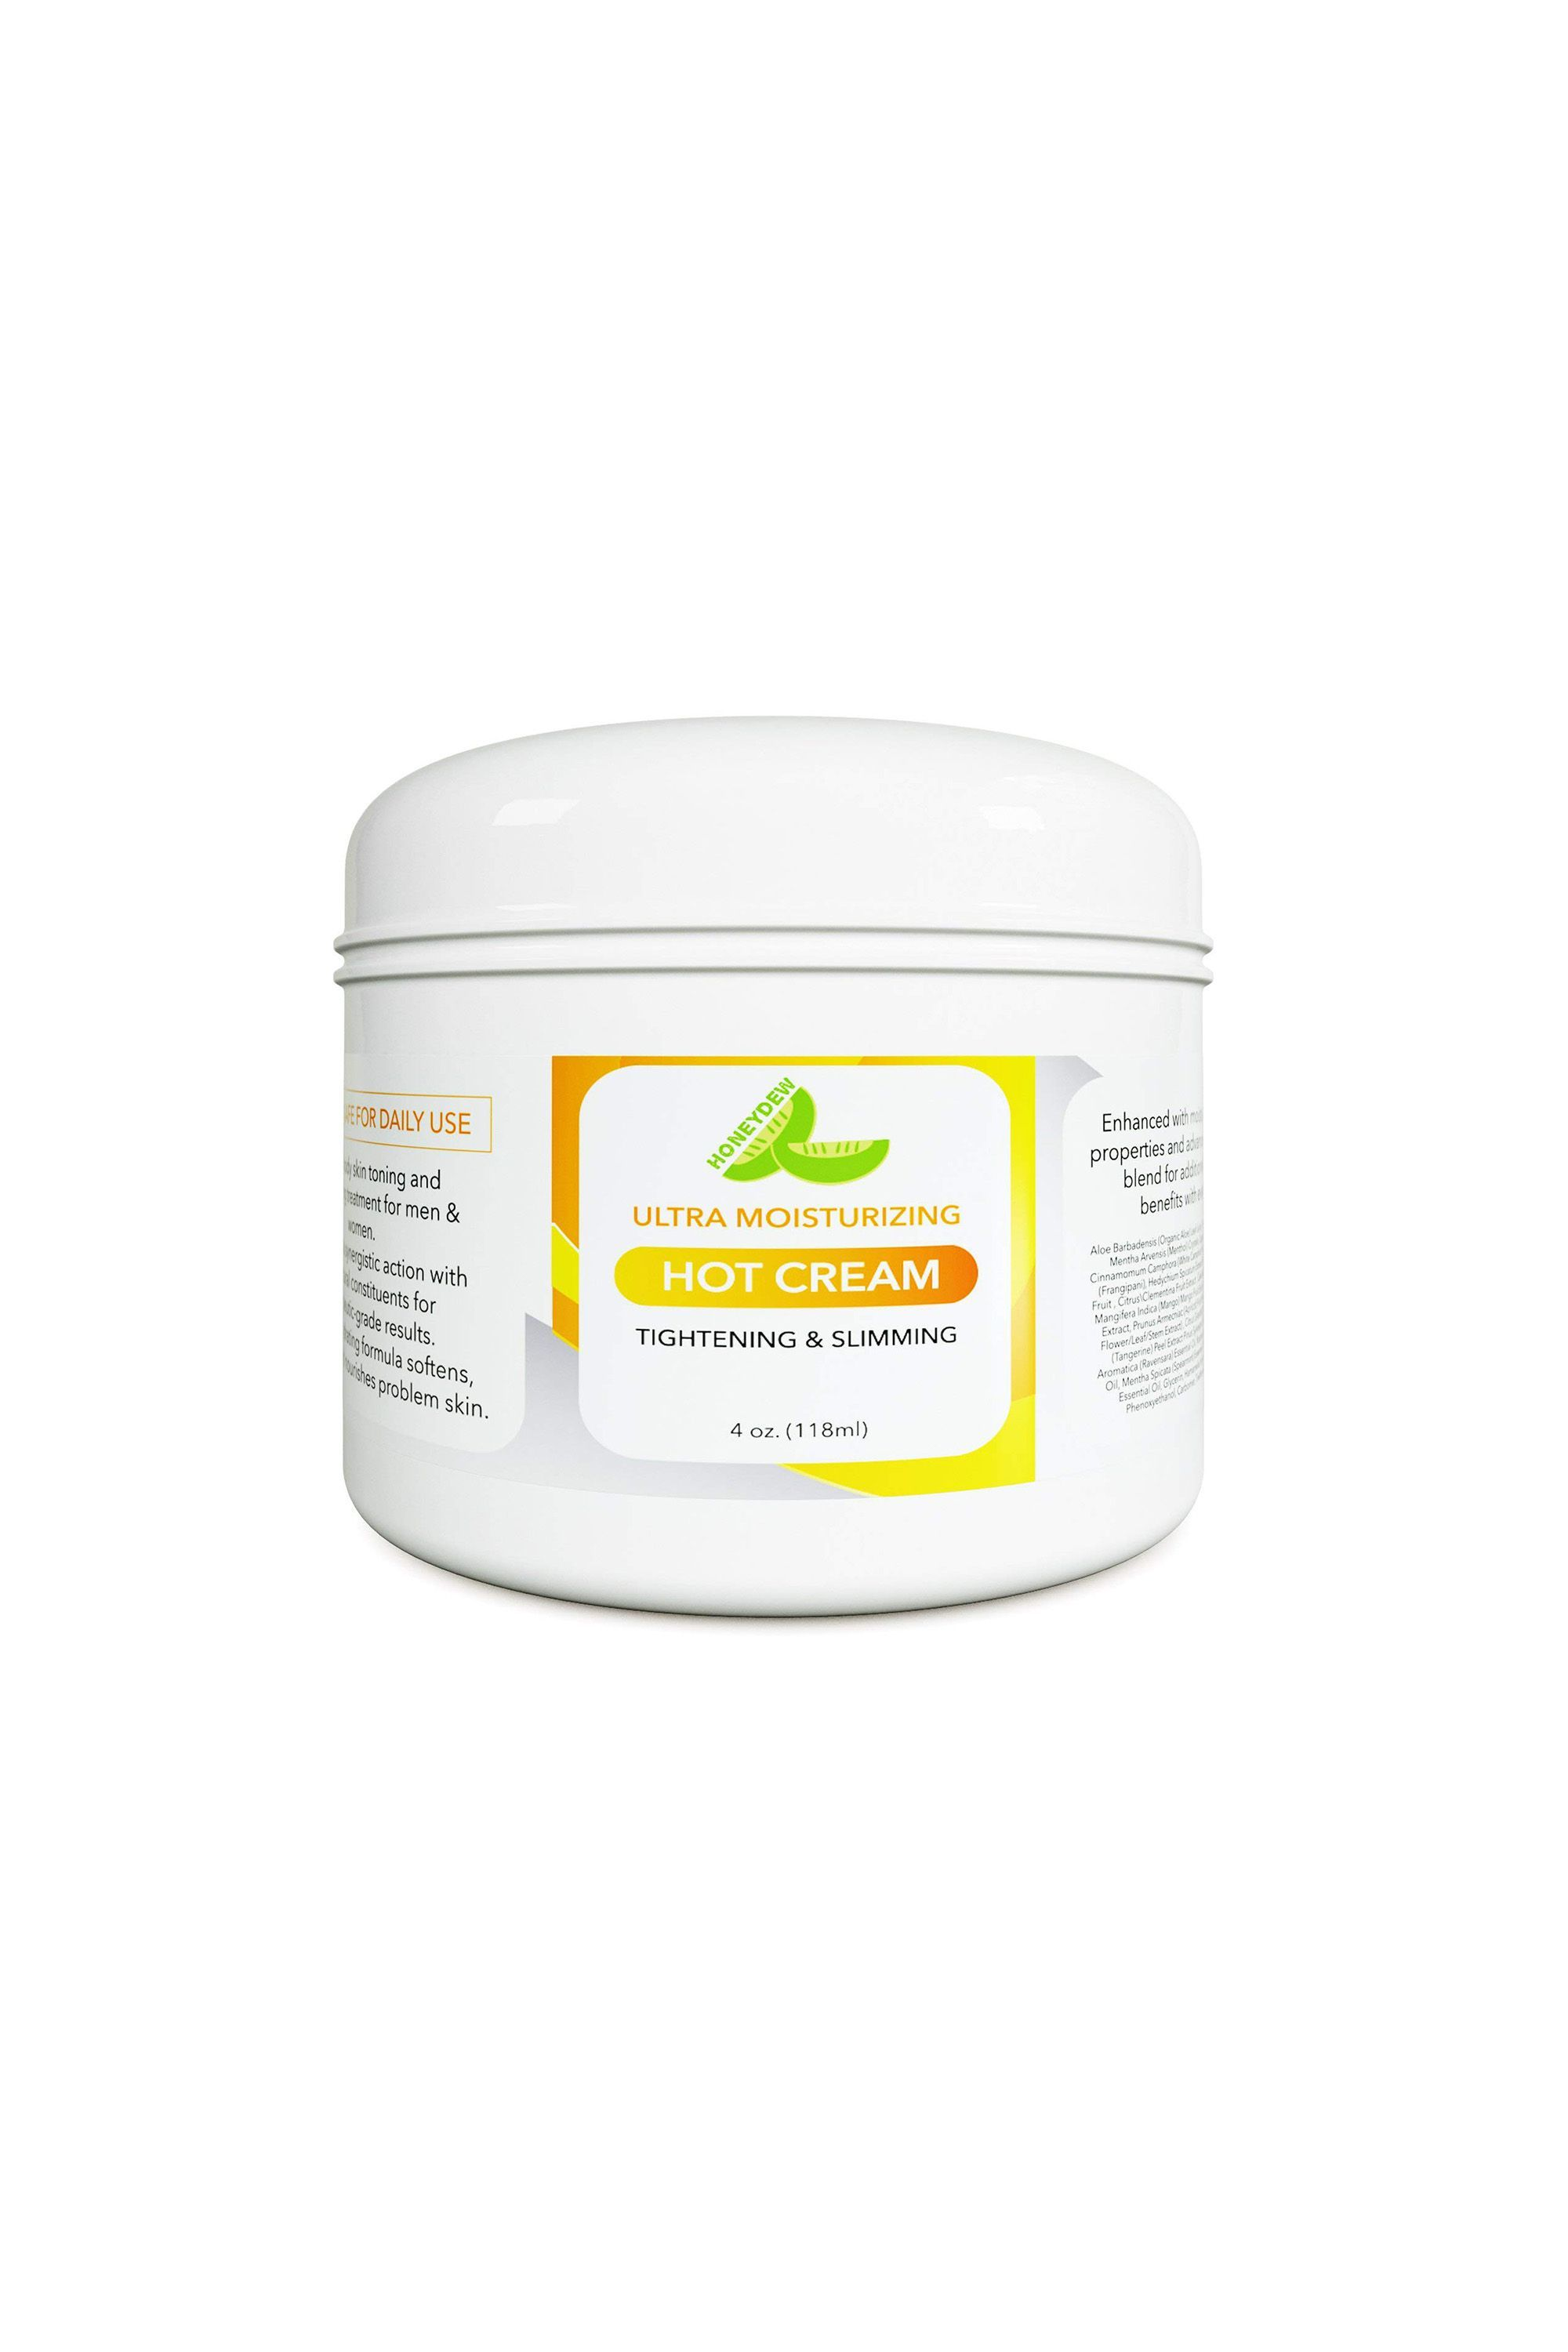 ec419bab5a1 10 Best Cellulite Creams - Top-Rated Cellulite Creams